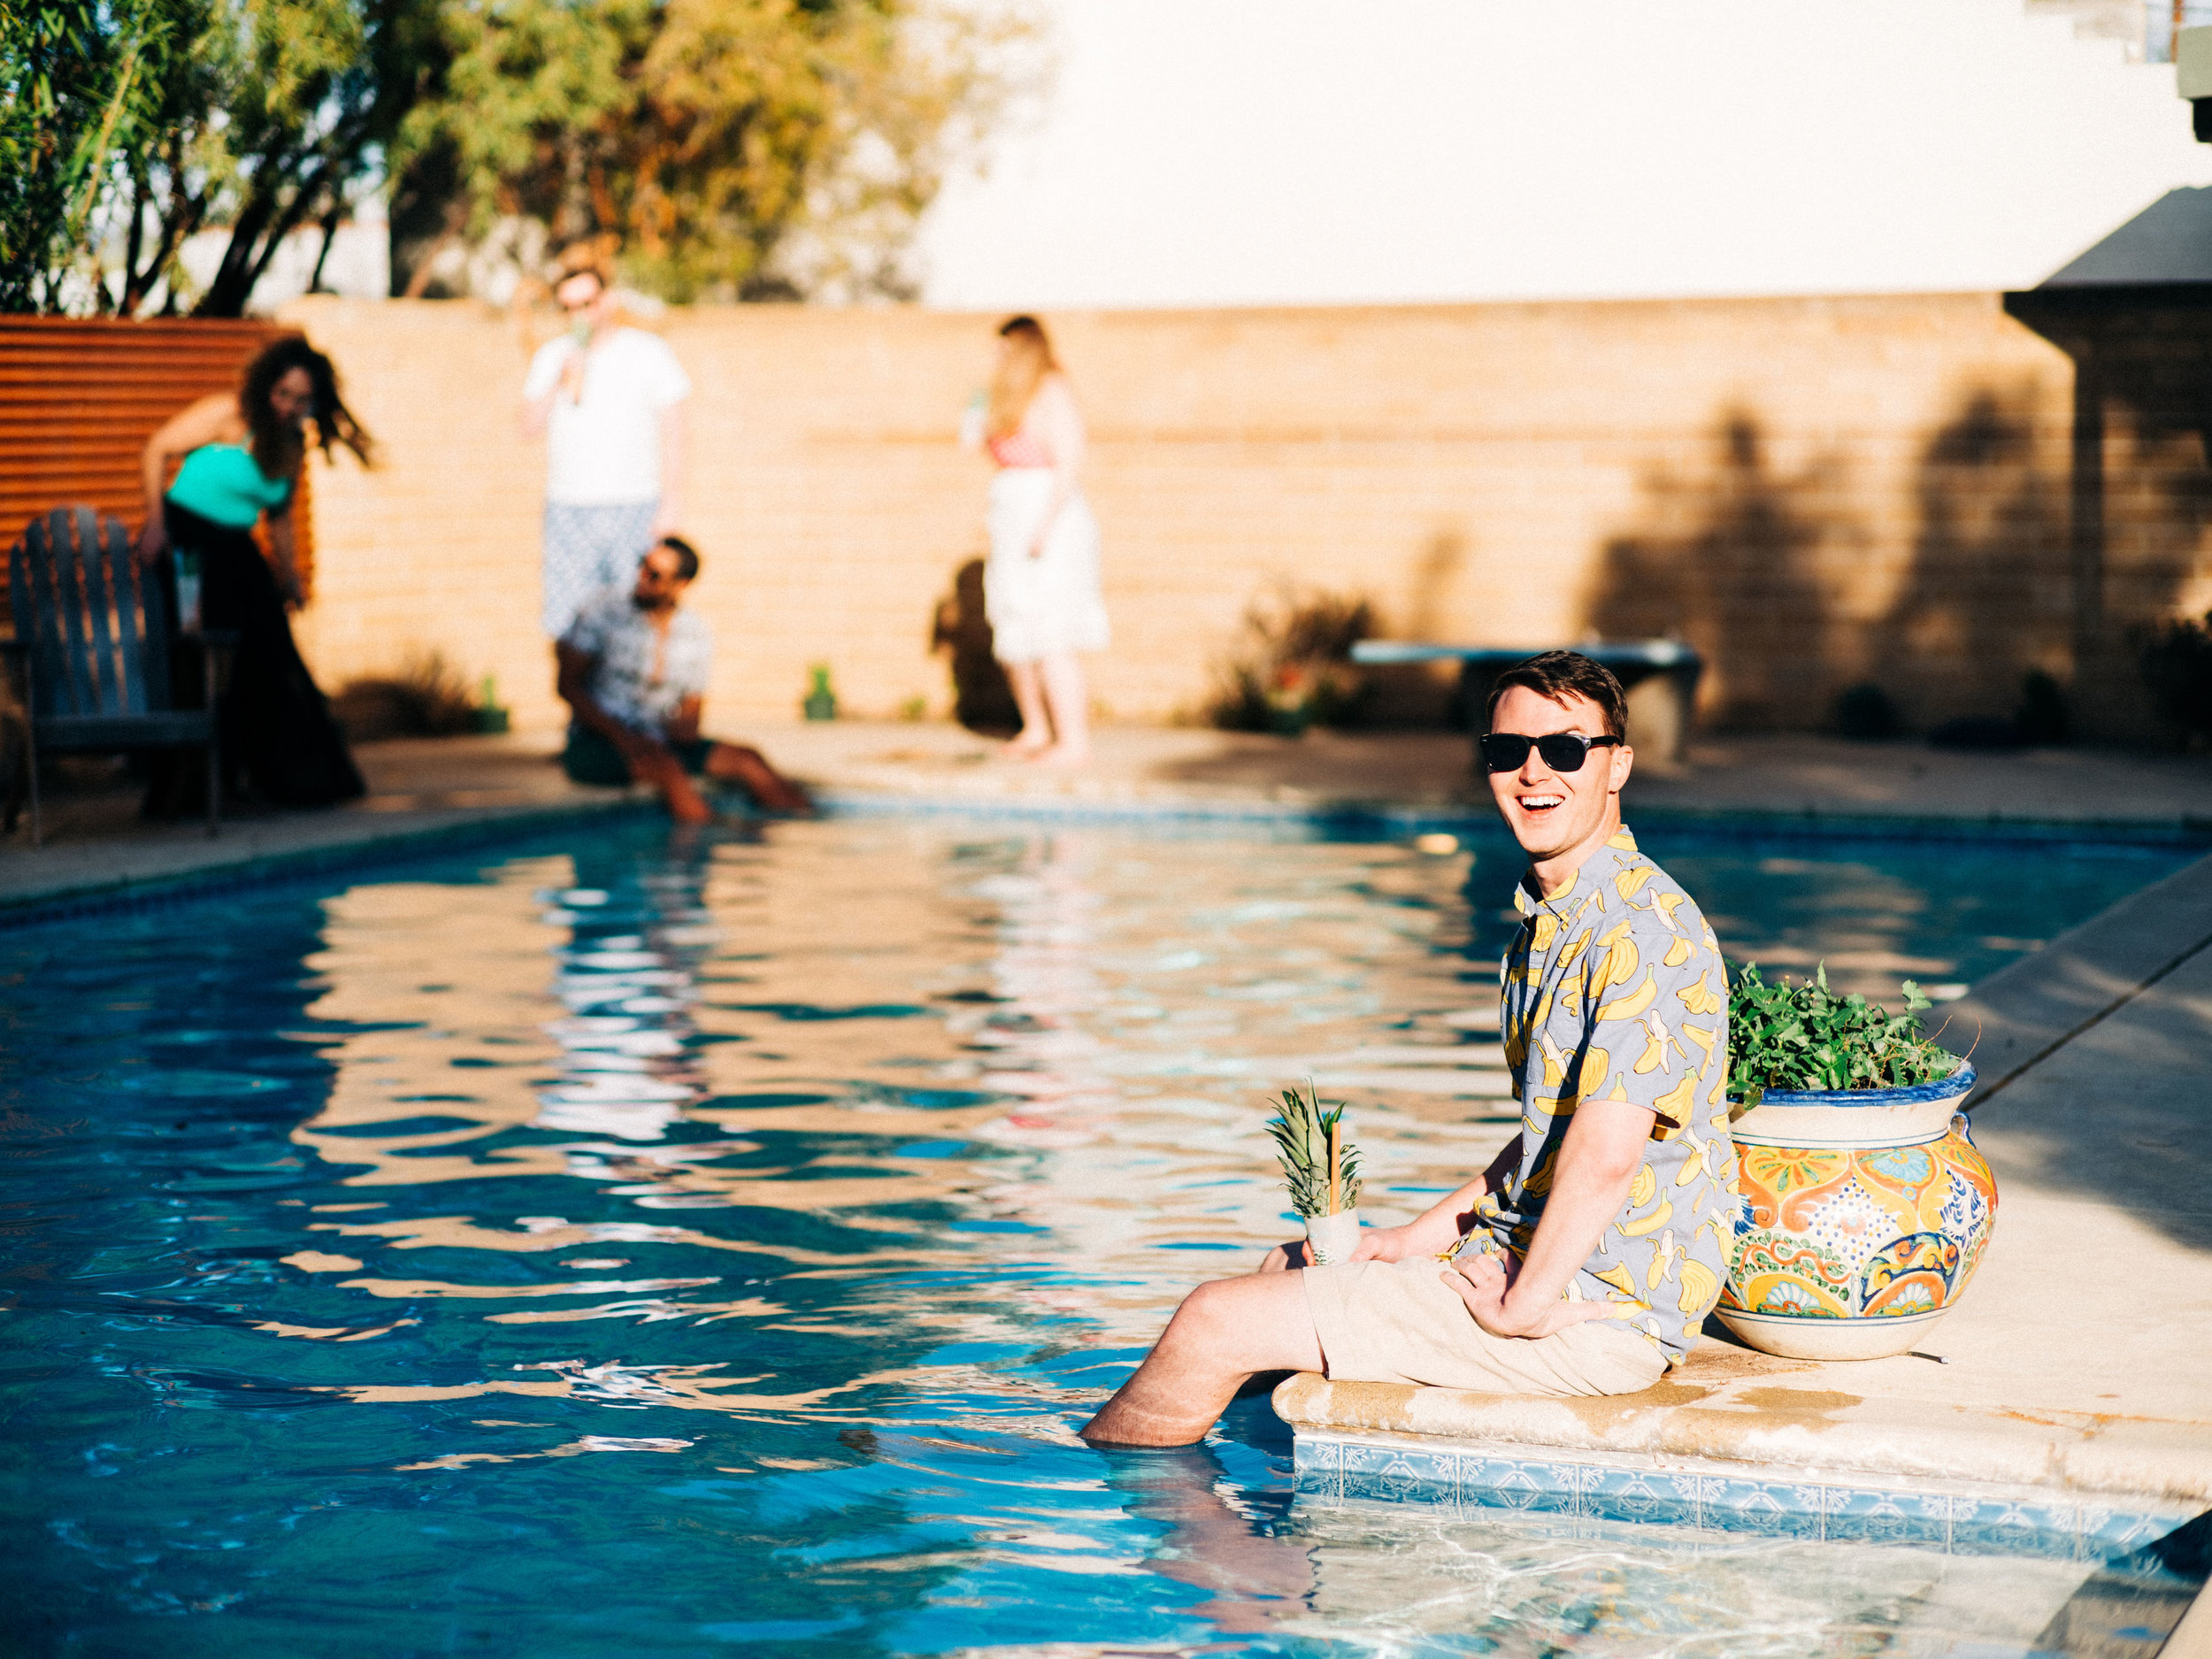 Andy-Shepard-Photography-Tucson-Pool-Party-77.jpg